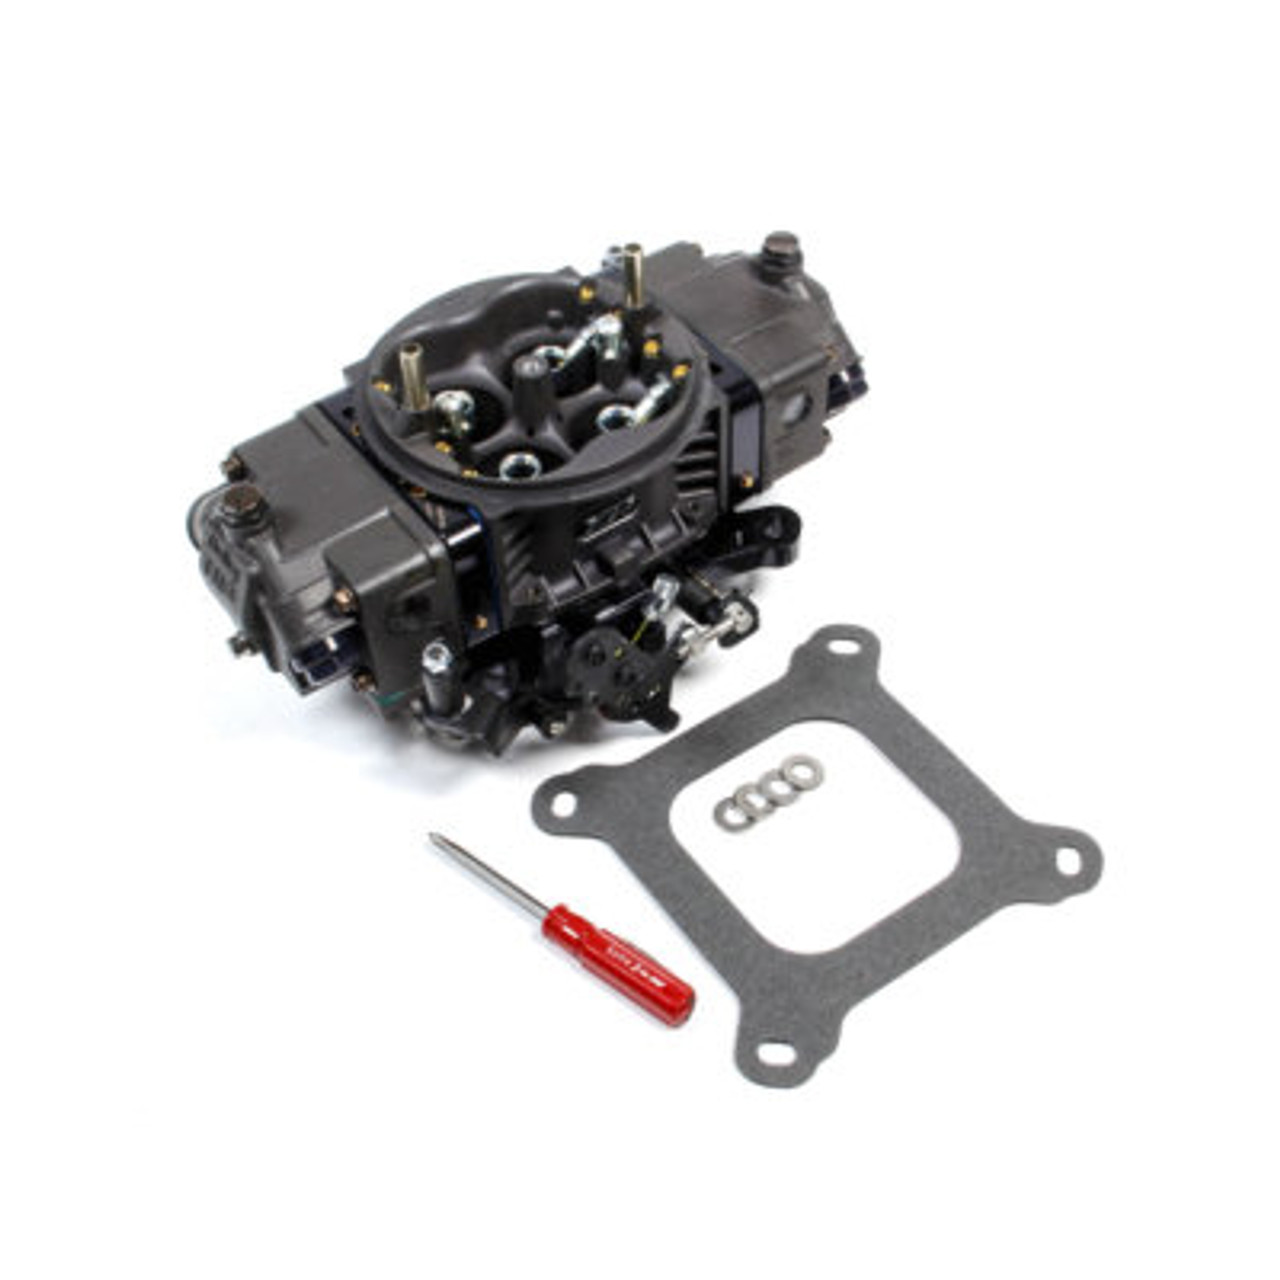 HLY0-80805HBX, ULTRA HP CARBURETOR -